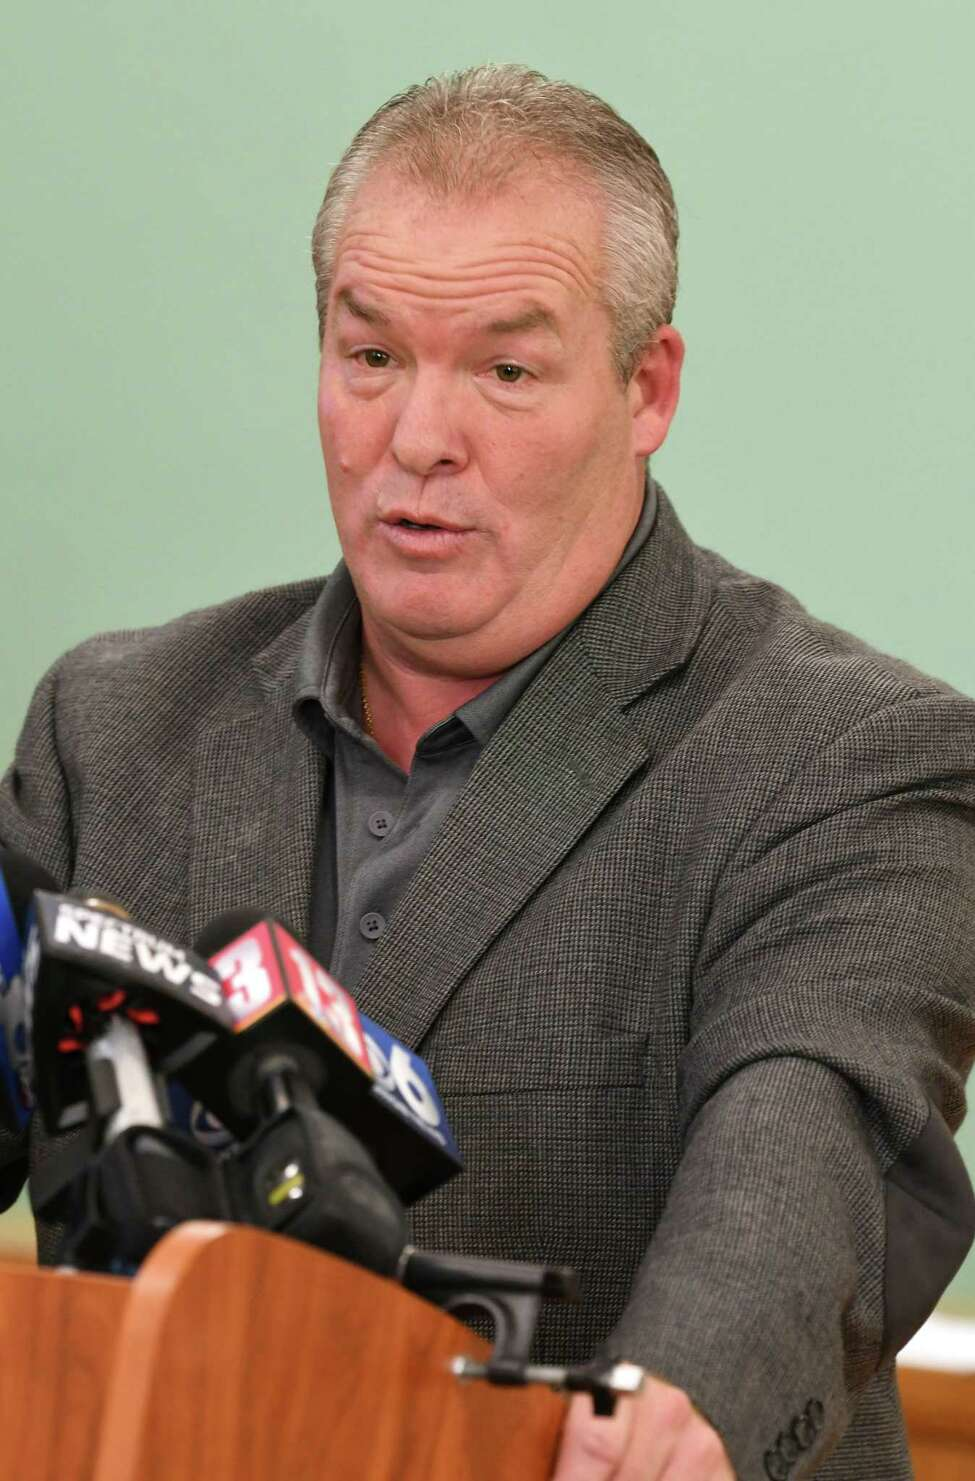 Cohoes Mayor Shawn Morse holds a press conference to speak out about the latest allegations and what's been going on with his family's life at Cohoes City Hall on Monday, Sept. 17, 2018 in Cohoes, N.Y. Morse said he doesn't plan on stepping down from his job. (Lori Van Buren/Times Union)